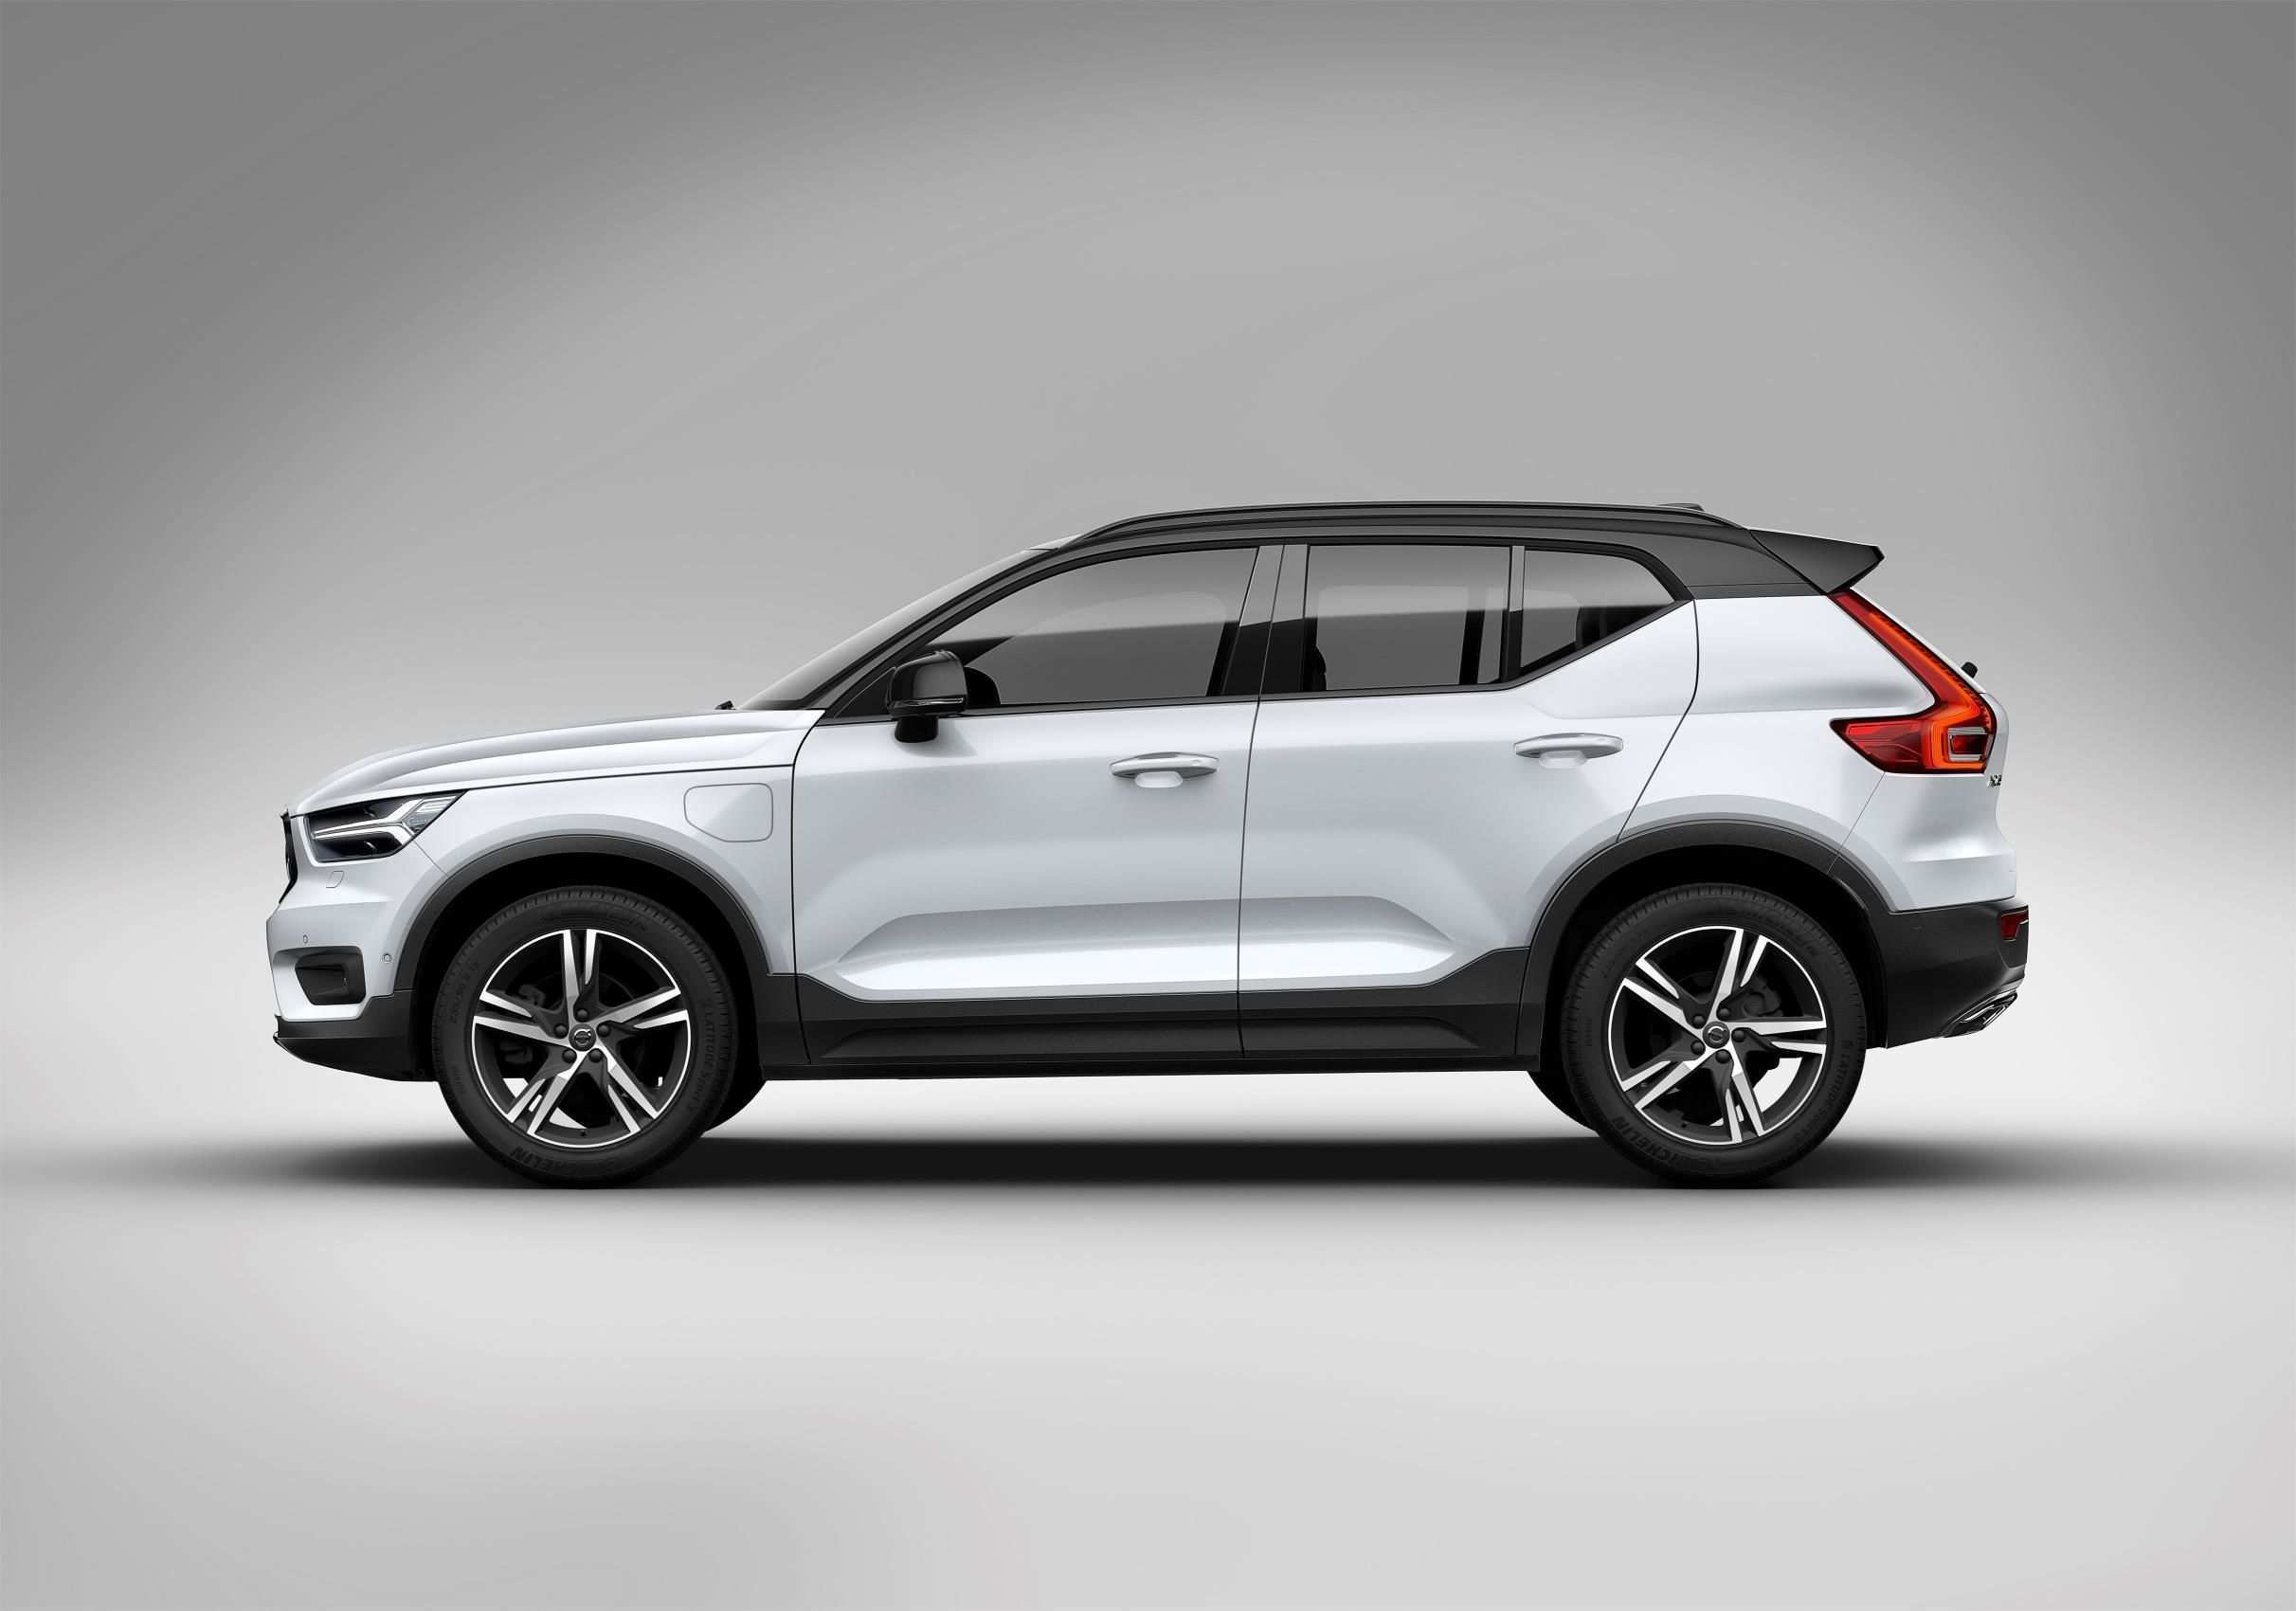 67 The Volvo Xc40 Dimensions 2020 New Review for Volvo Xc40 Dimensions 2020